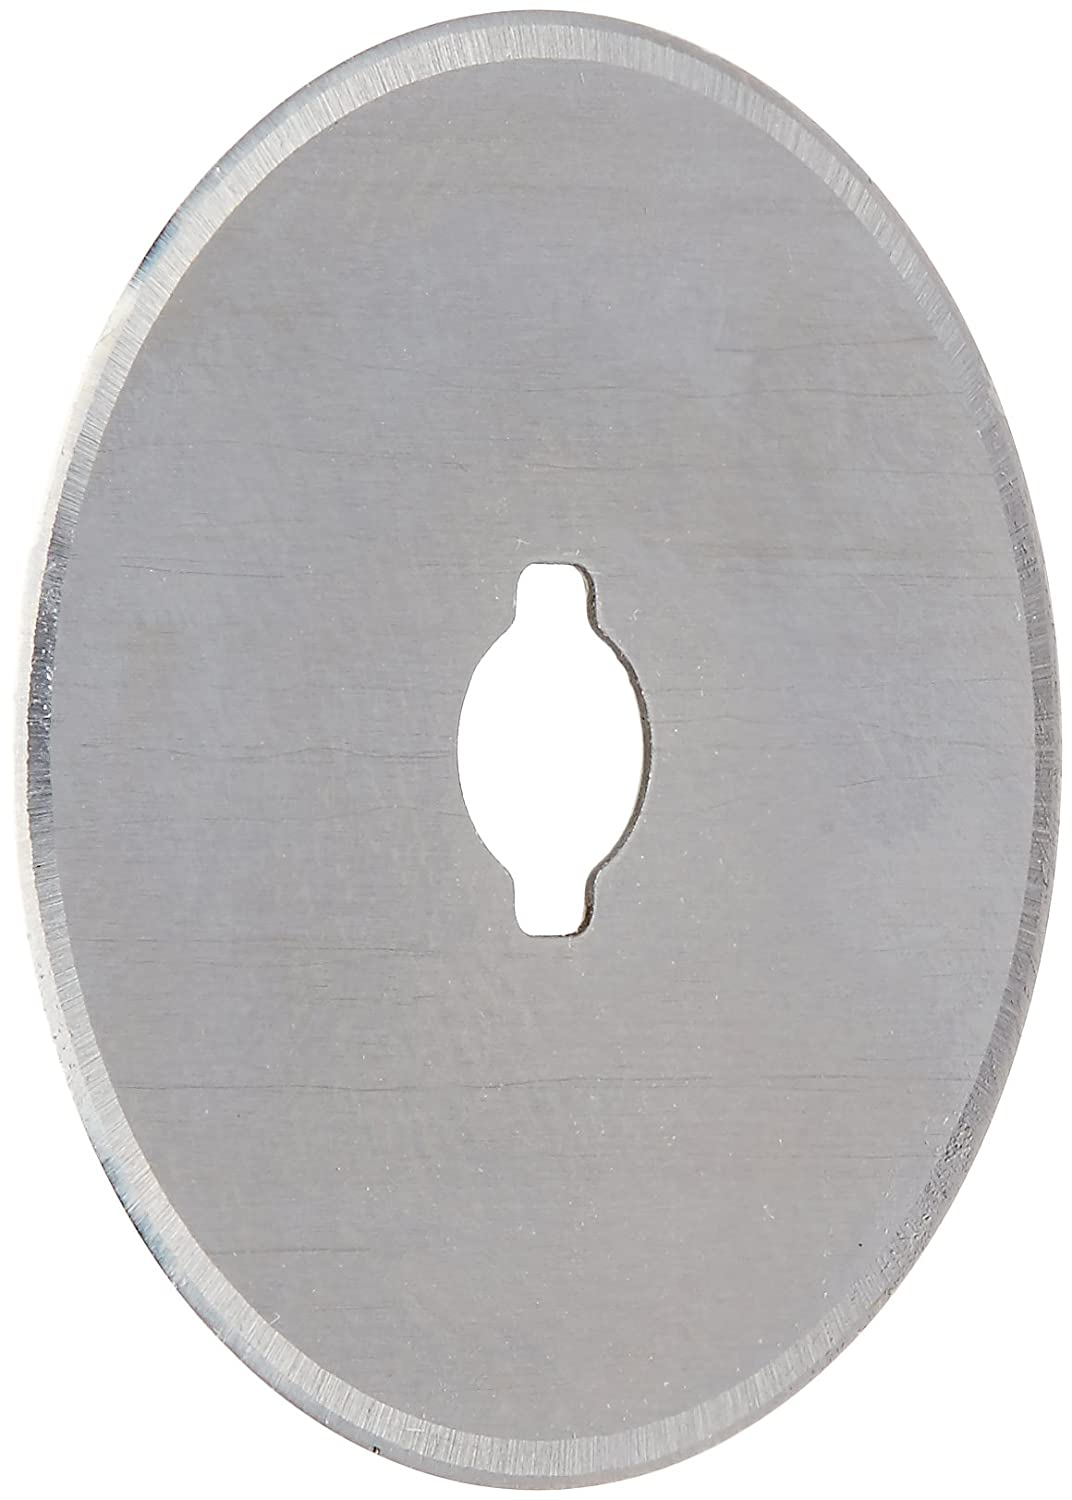 Clover 28mm Rotary Cutter Blades, 5-Pack 7515